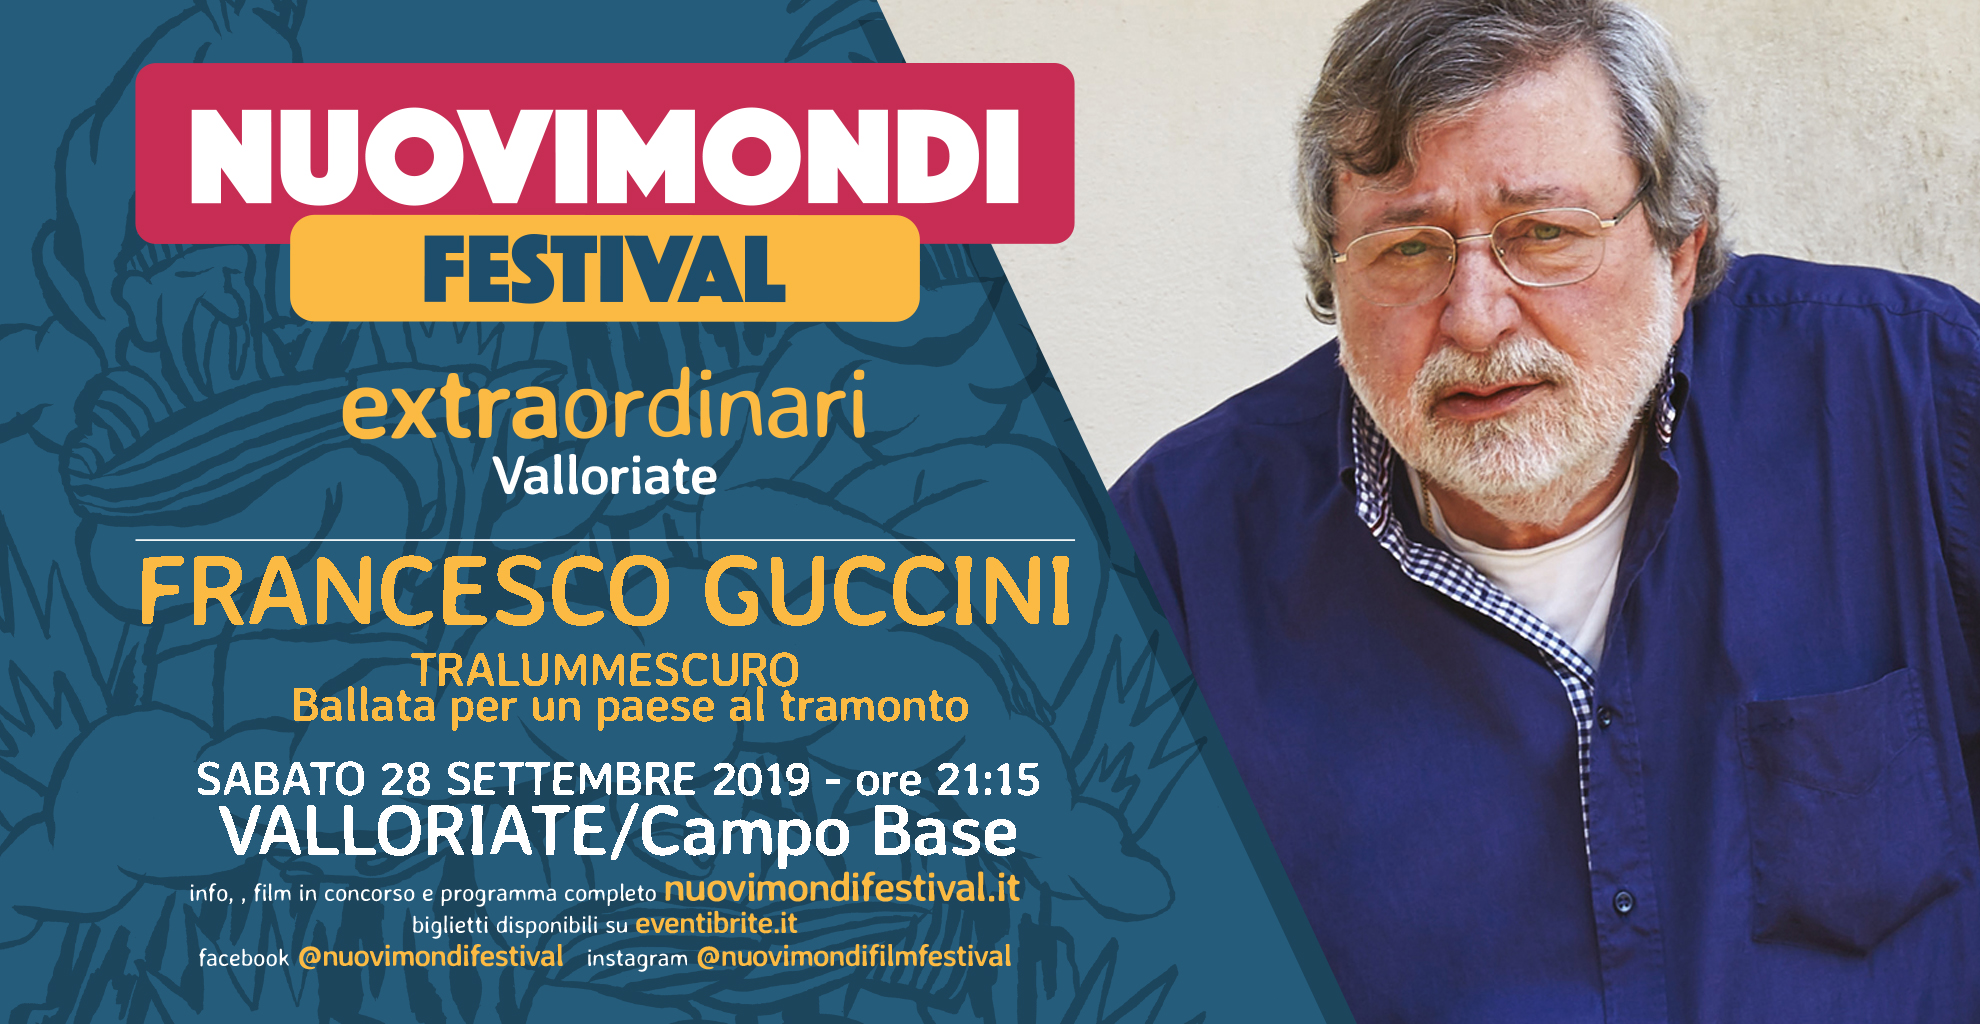 NuoviMondi_Facebook-Fancesco-Guccini